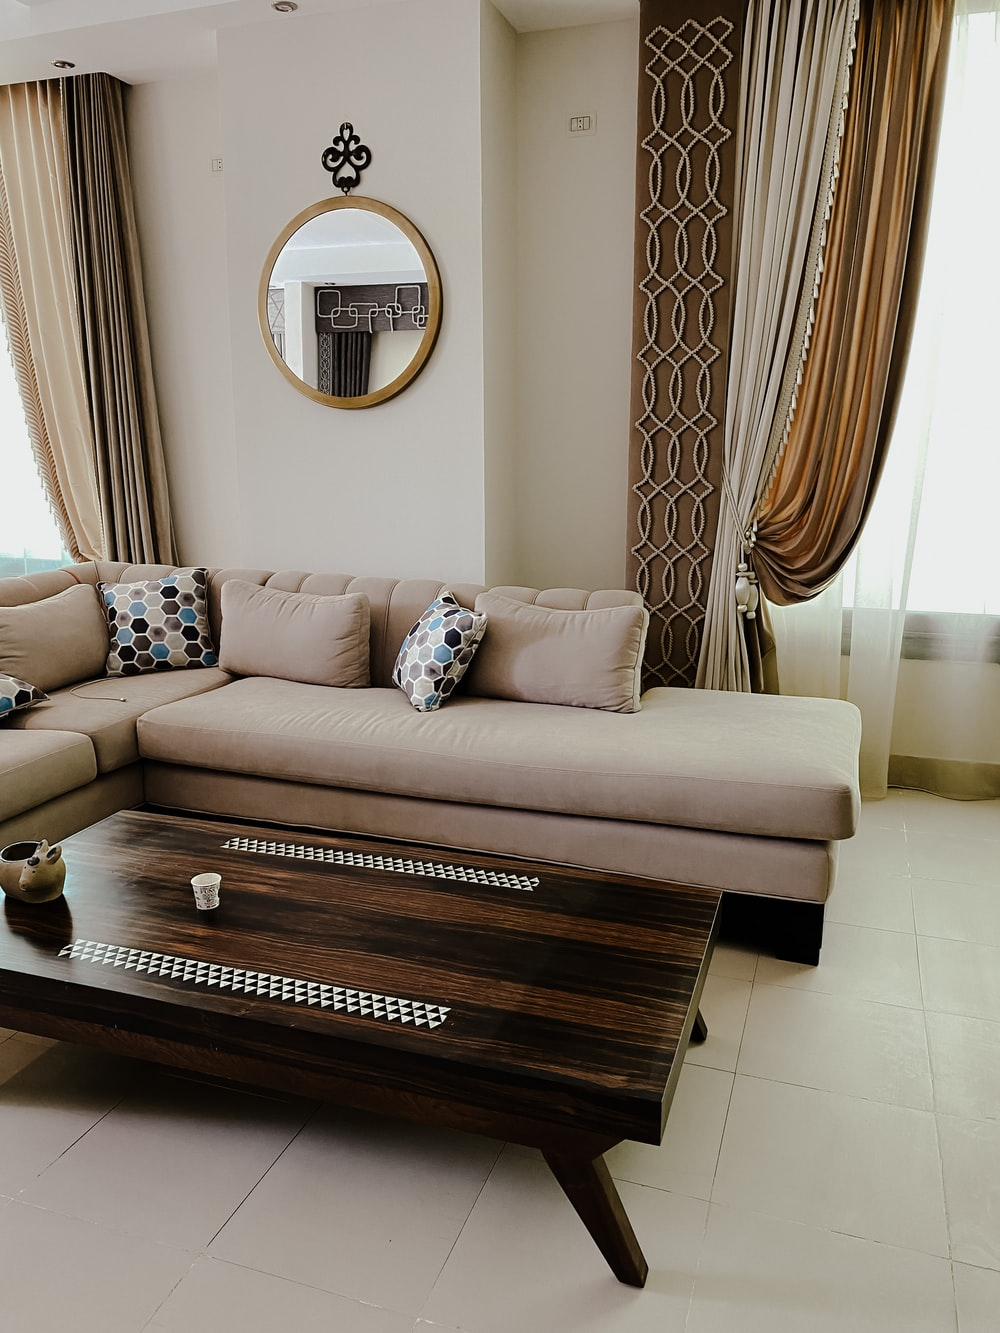 brown wooden bed frame with white and brown floral sofa